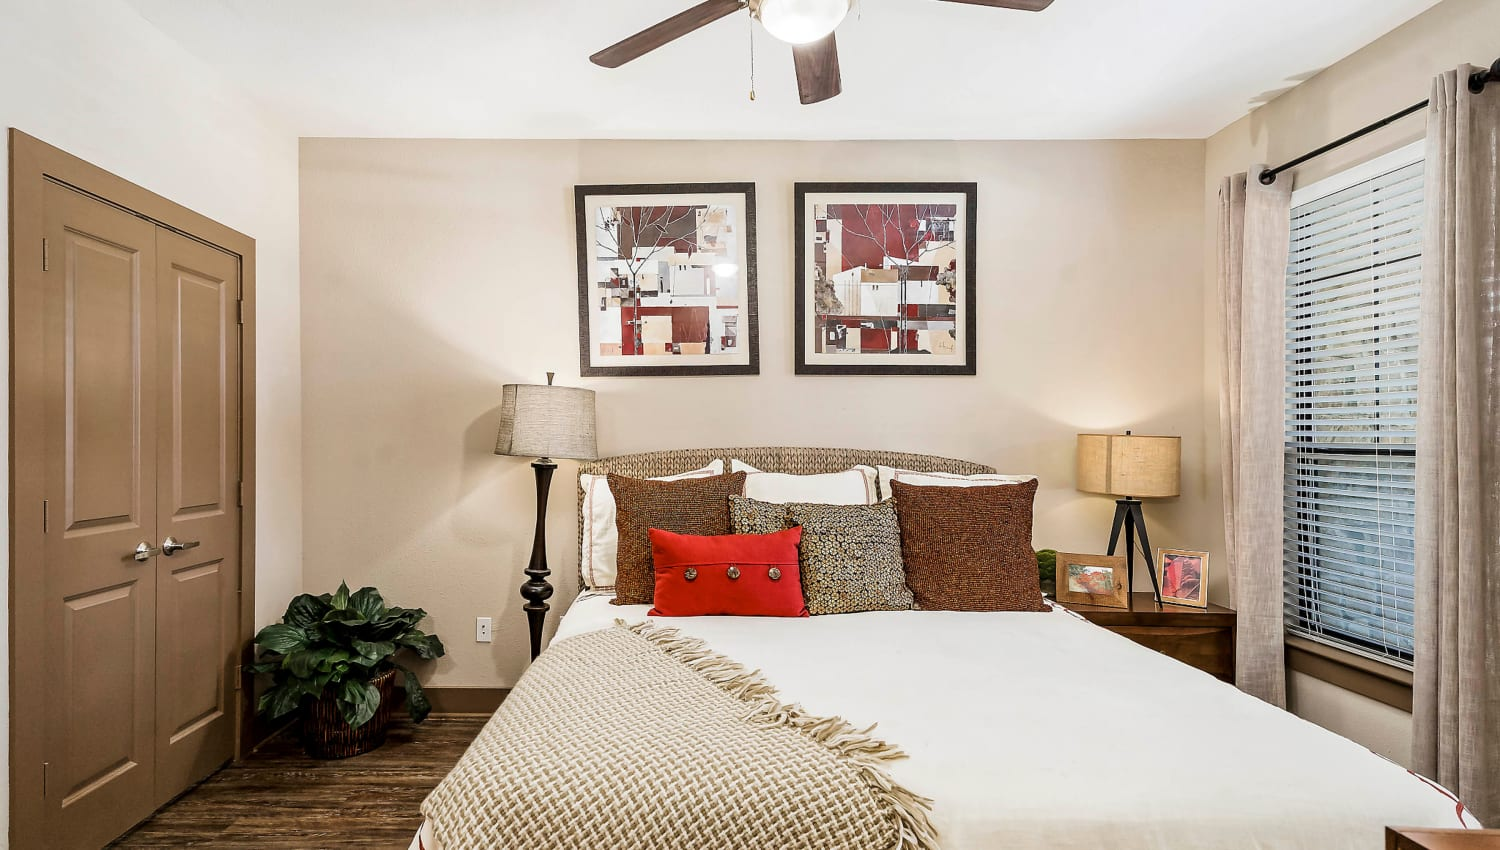 Ceiling fan and modern decor in a model home's master bedroom at Sedona Ranch in Odessa, Texas